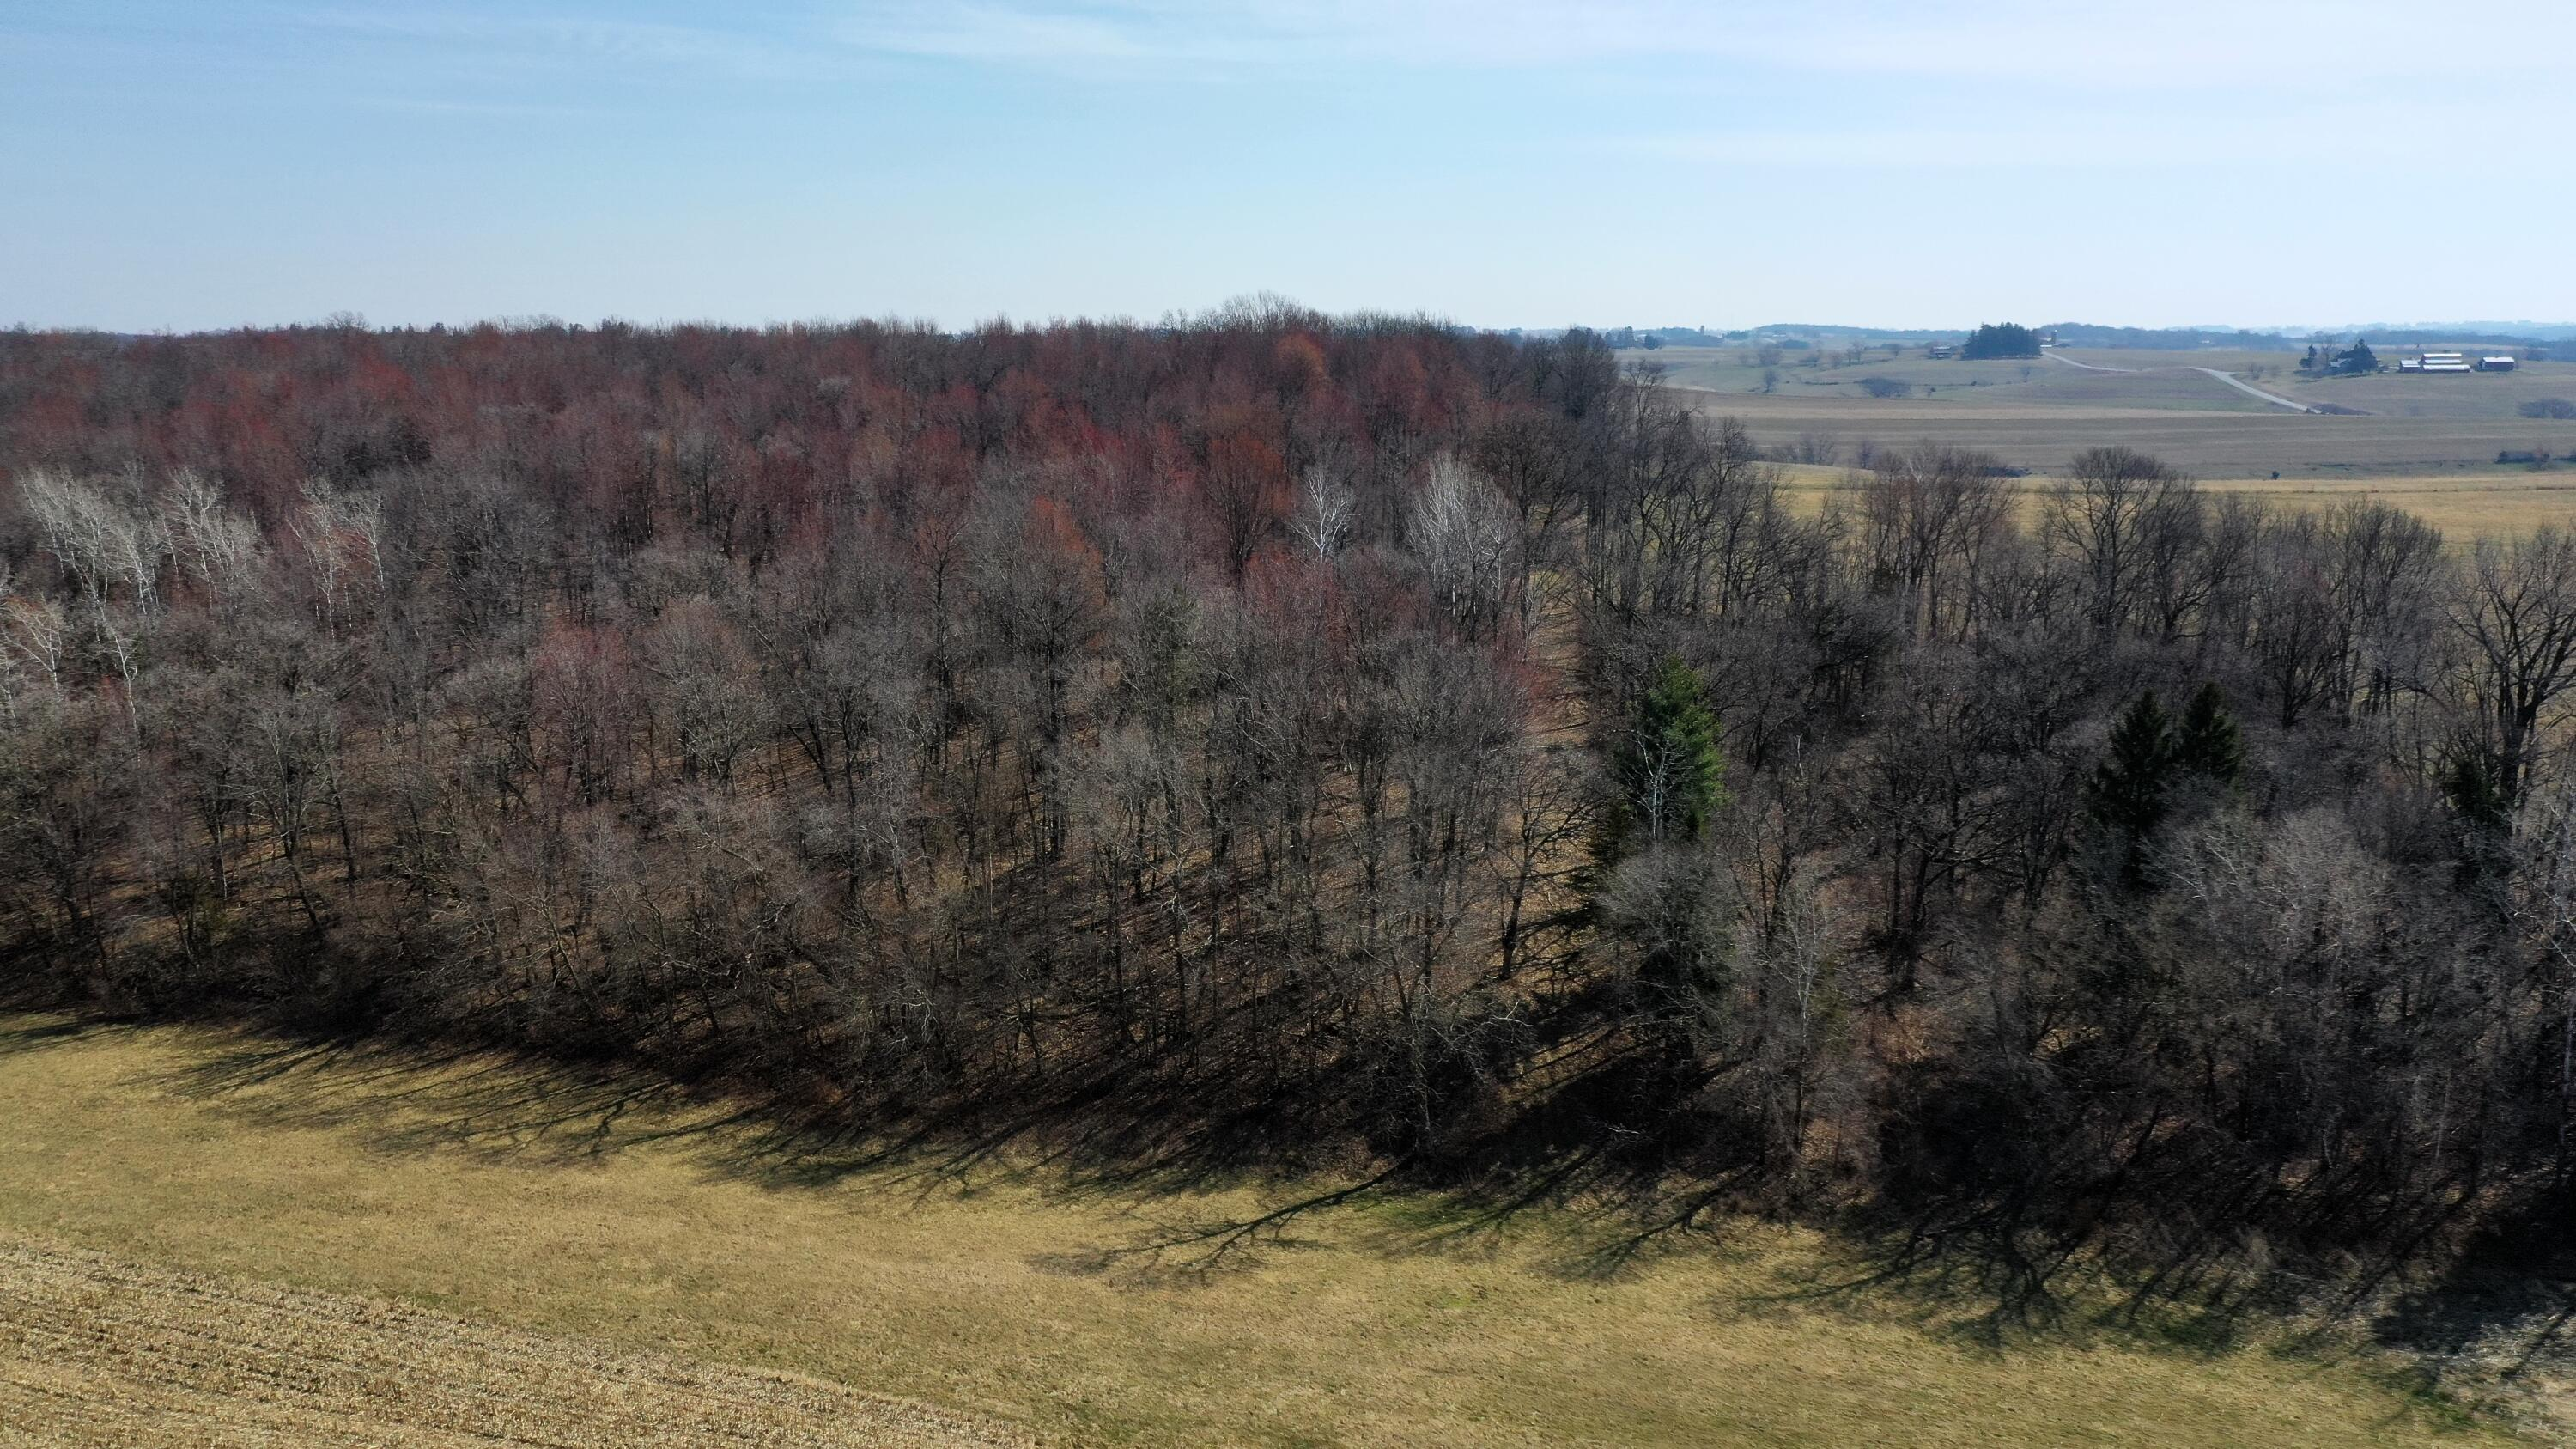 66+/- acres with several potential building sites.Wonderful recreational property with groomed trails and several hunting stands. Land is a mix of tillable, pasture, and woods (enrolled in MFL)Wonderful location within 30 minutes of La Crosse. Here's your opportunity to invest in rural living! Room for gardening, animals, hunting, ATVs and enjoying the outdoors. Just a short drive to several great trout fishing streams! Additional acres available! MLS # 1733484(10 acres with cabin and pole shed) and MLS#1733485 (126 .84 acres-whole farm)